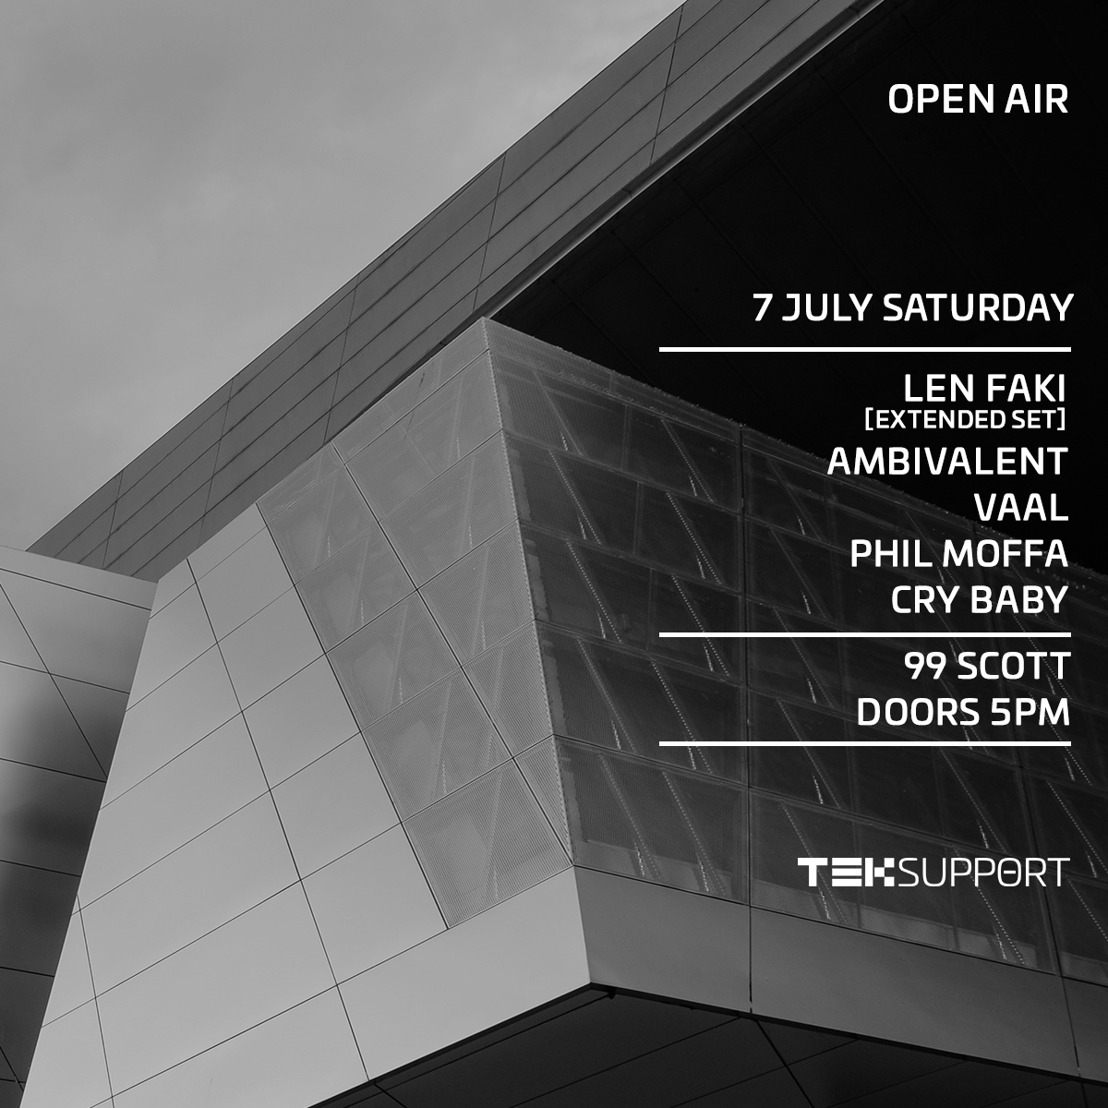 Teksupport Announce July 7 Day Into Night Open Air Event with Len Faki